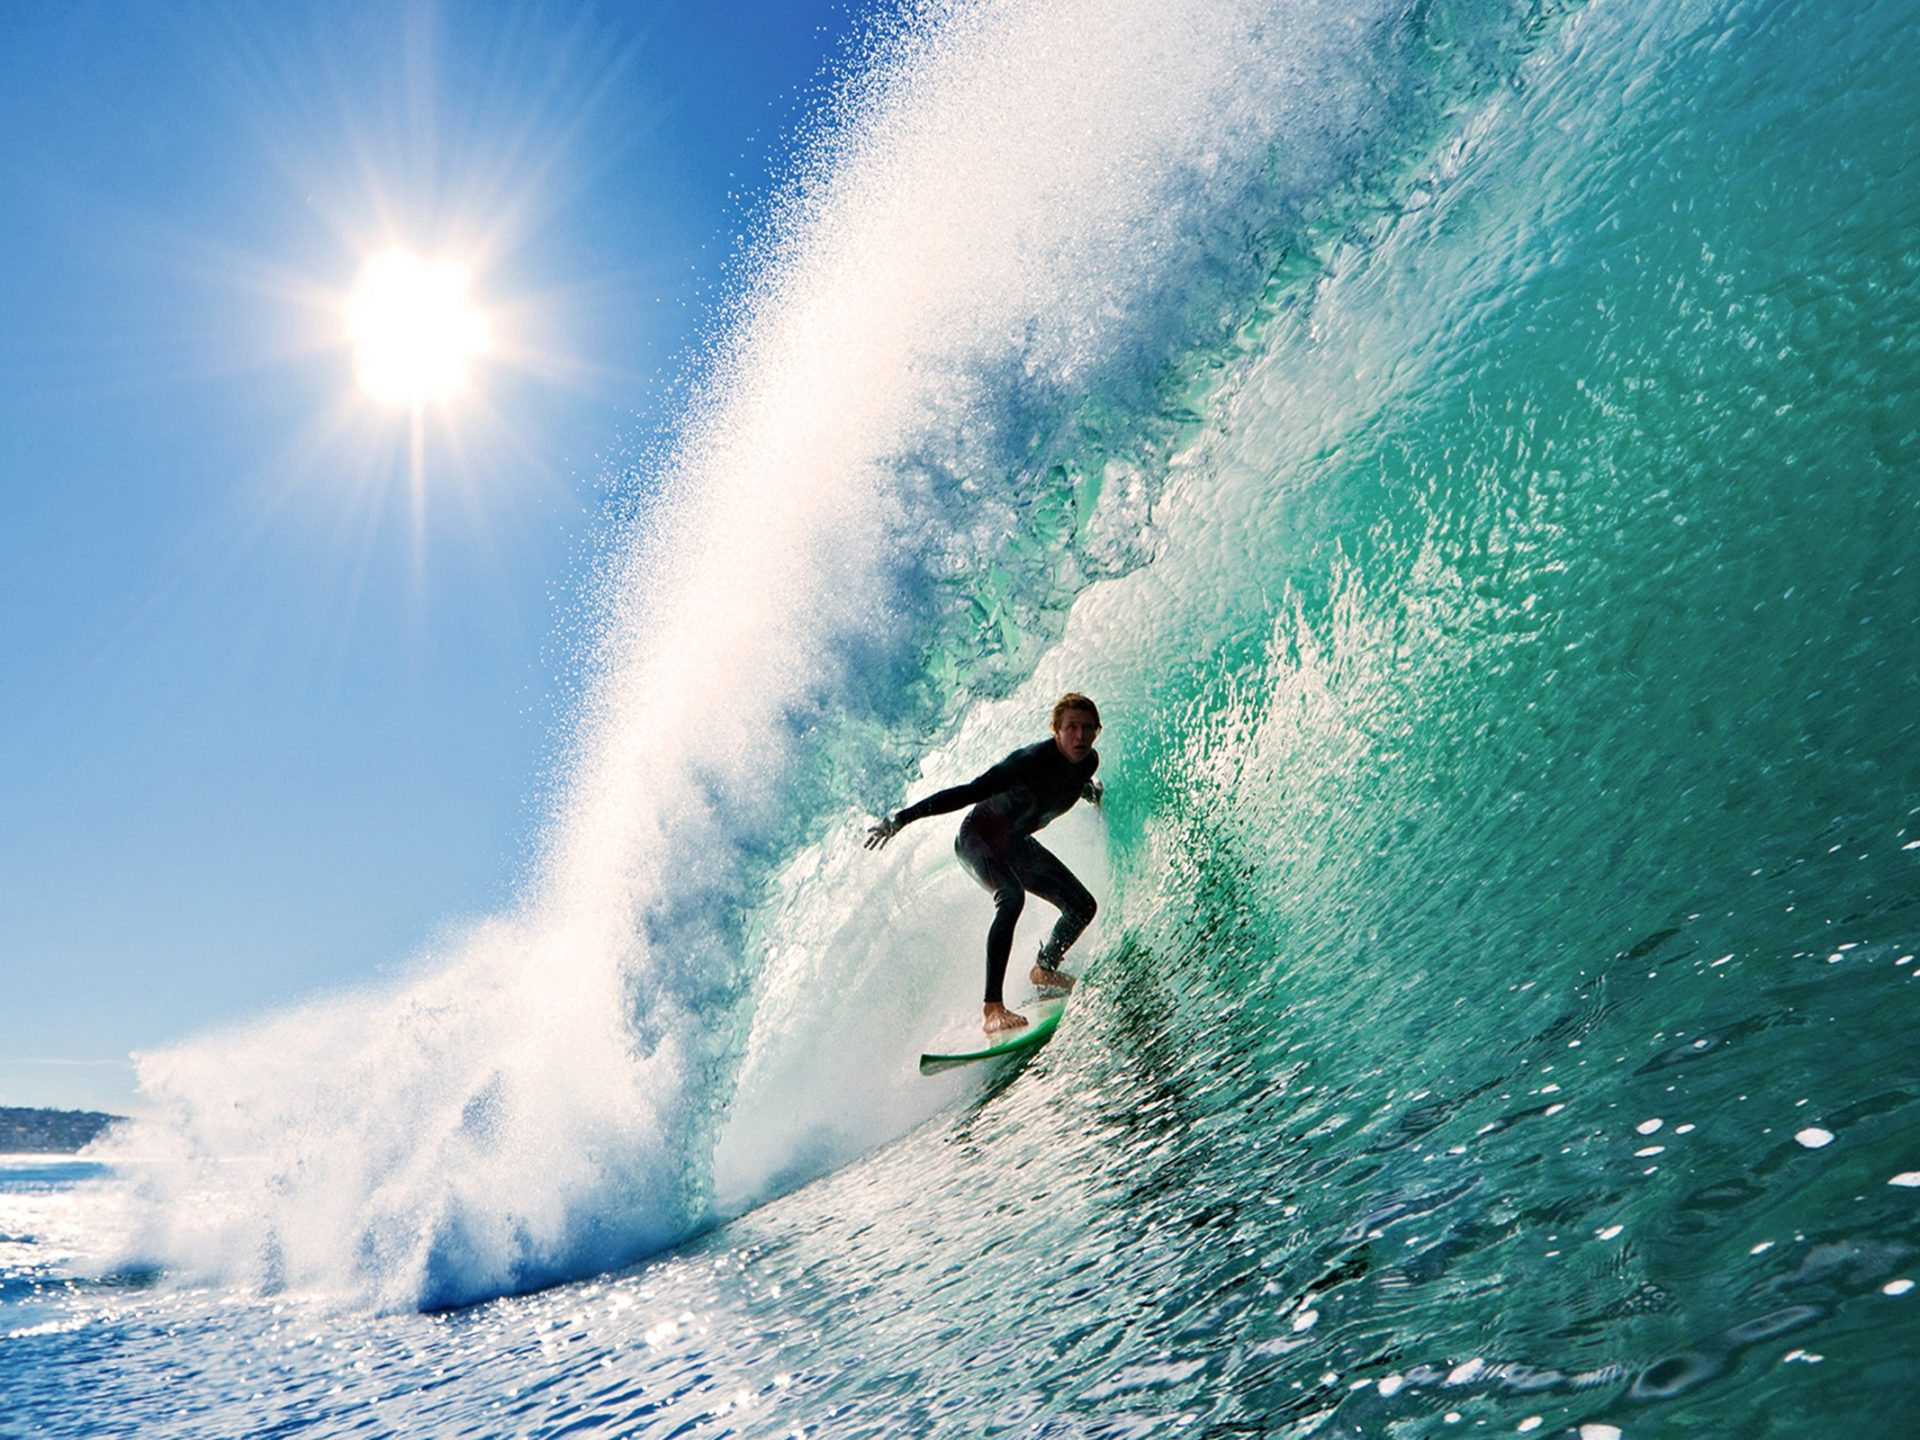 Caribbean Iphone Wallpaper Sports Surfing 4375 Hd Wallpaper Background Wallpapers13 Com